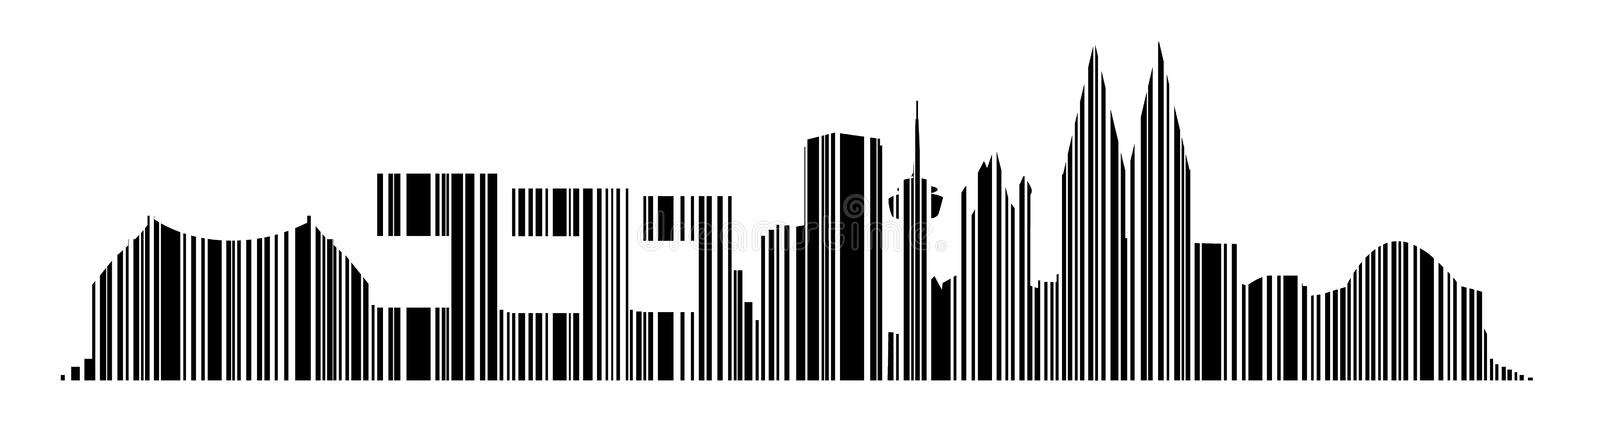 Vektor för Cologne horisontBarcode vektor illustrationer